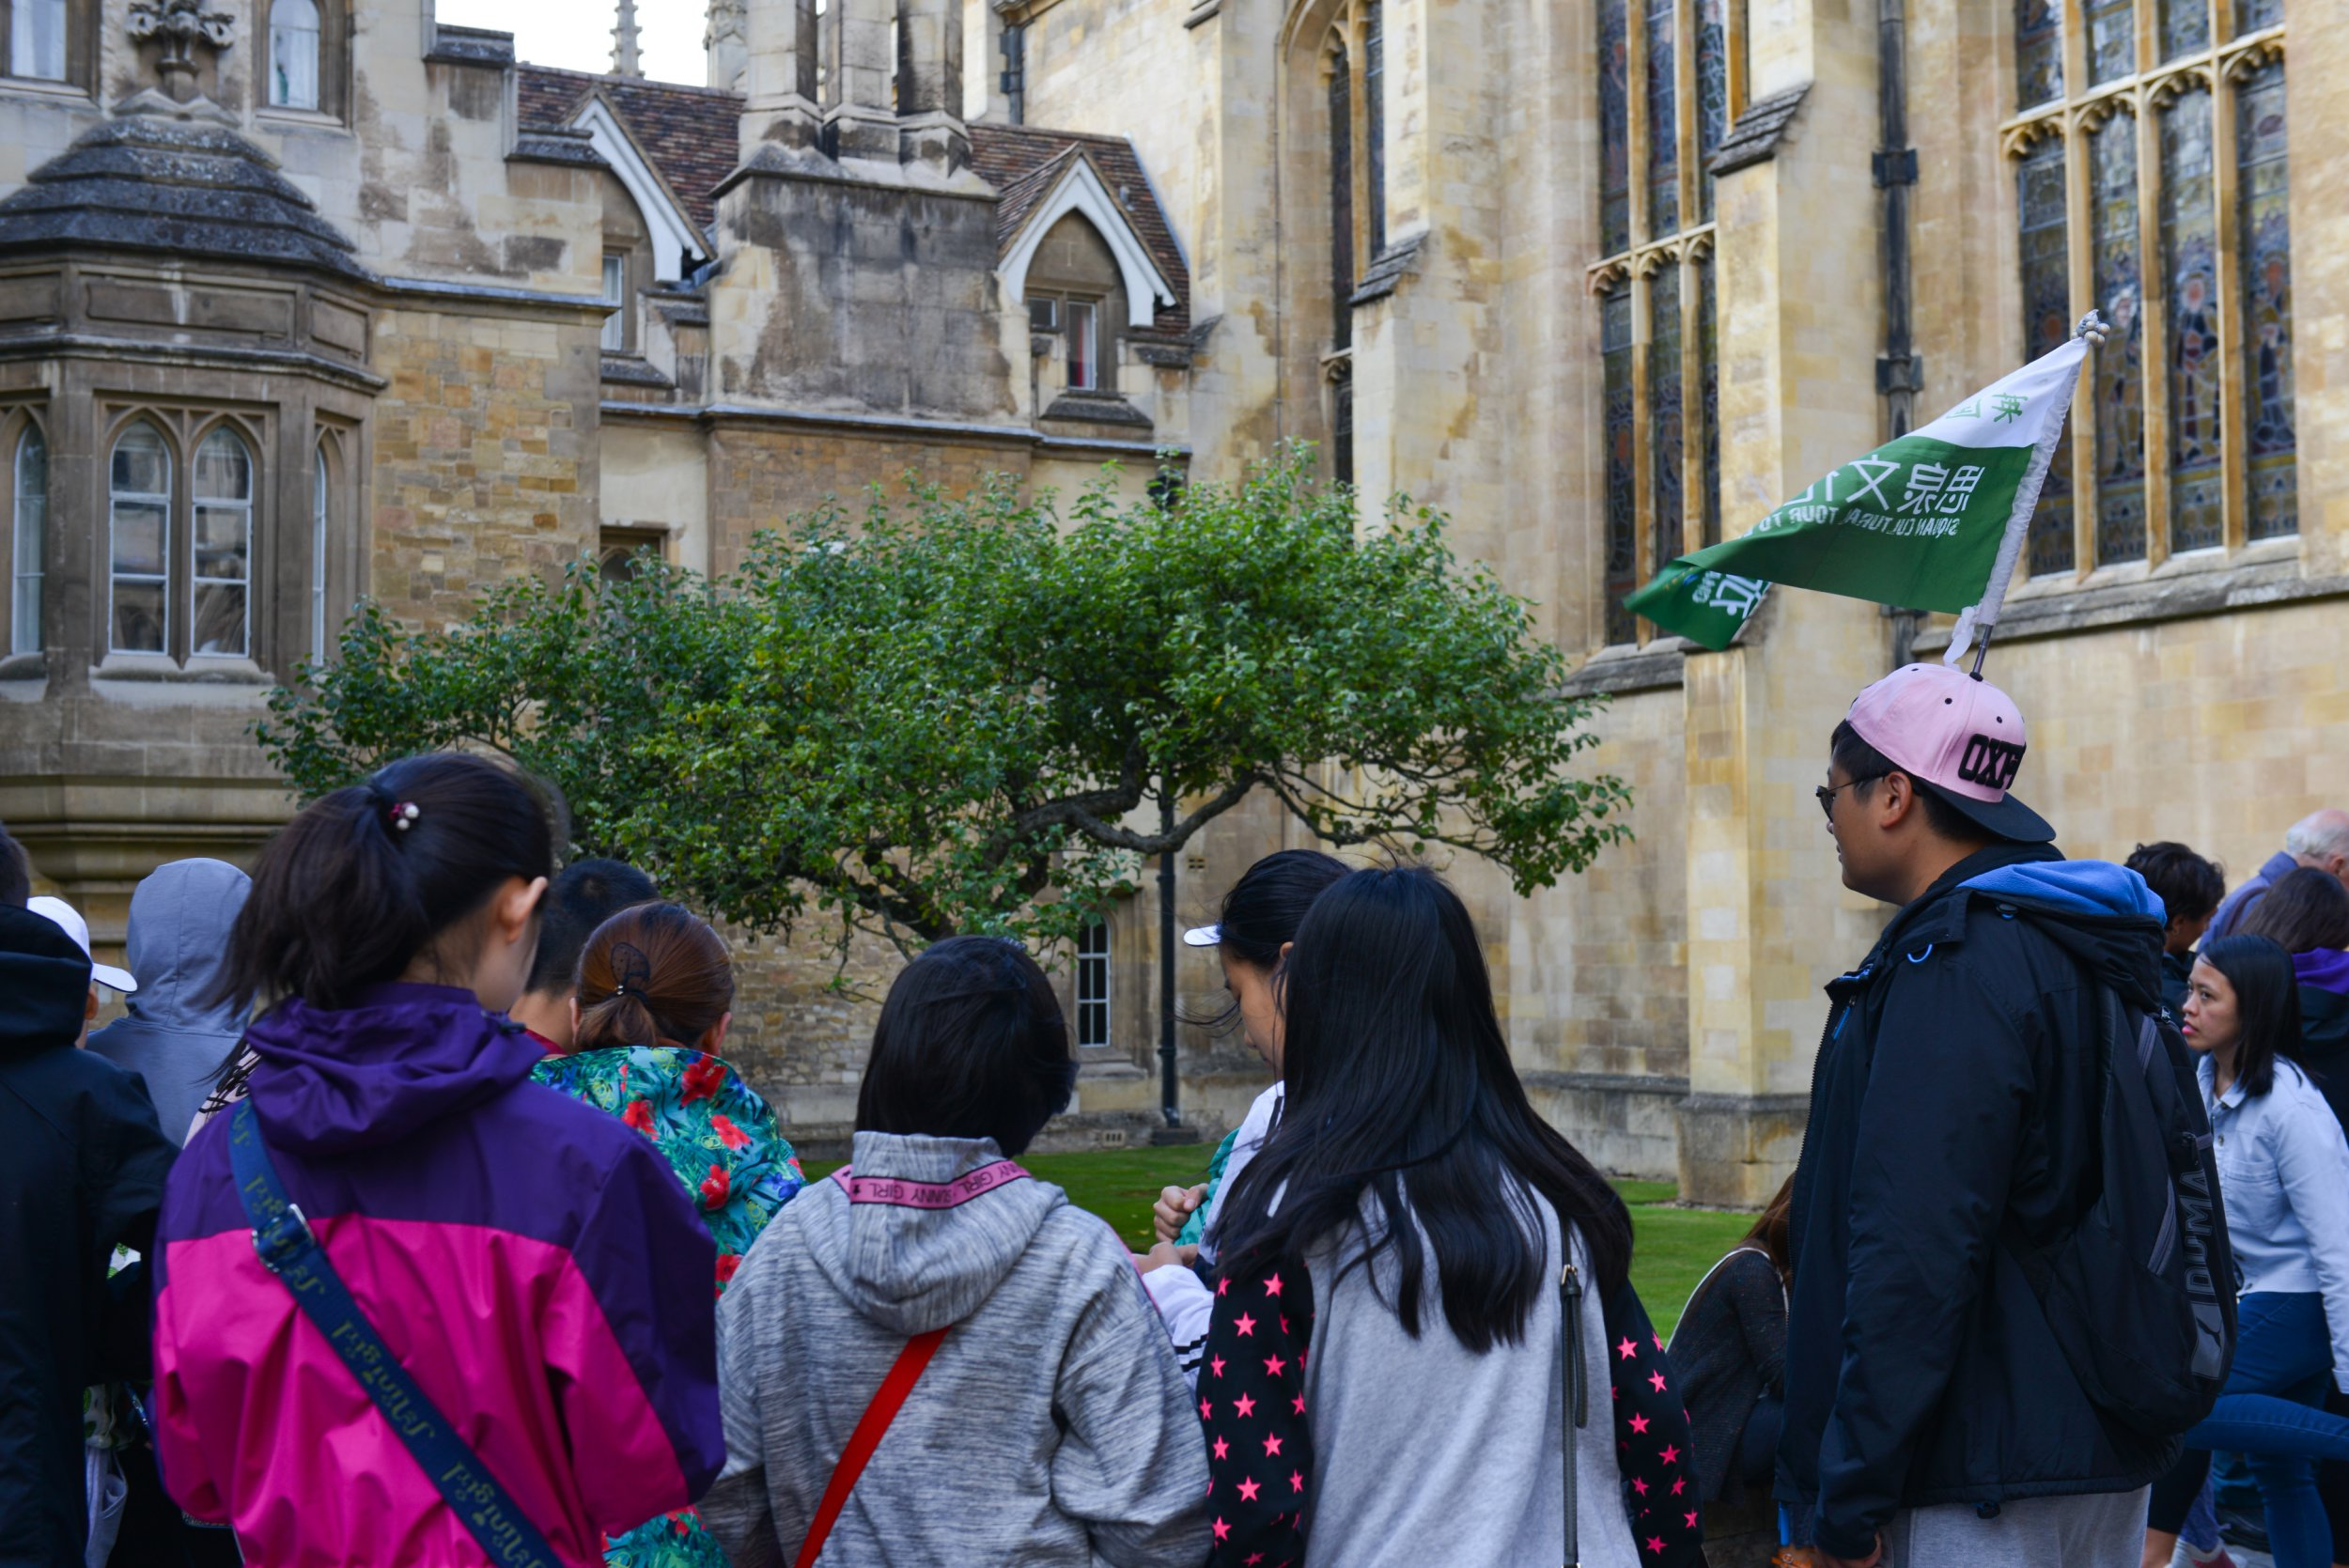 CAMBRIDGE, ENGLAND - AUGUST 19: Chinese tourists stand in front of Isaac Newton's apple tree at Trinity College, part of the University of Cambridge on August 19, 2017 in Cambridge, England. A lot of tourists from all over the world visit the campus of the University of Cambridge during summer. (Photo by VCG/VCG via Getty Images)